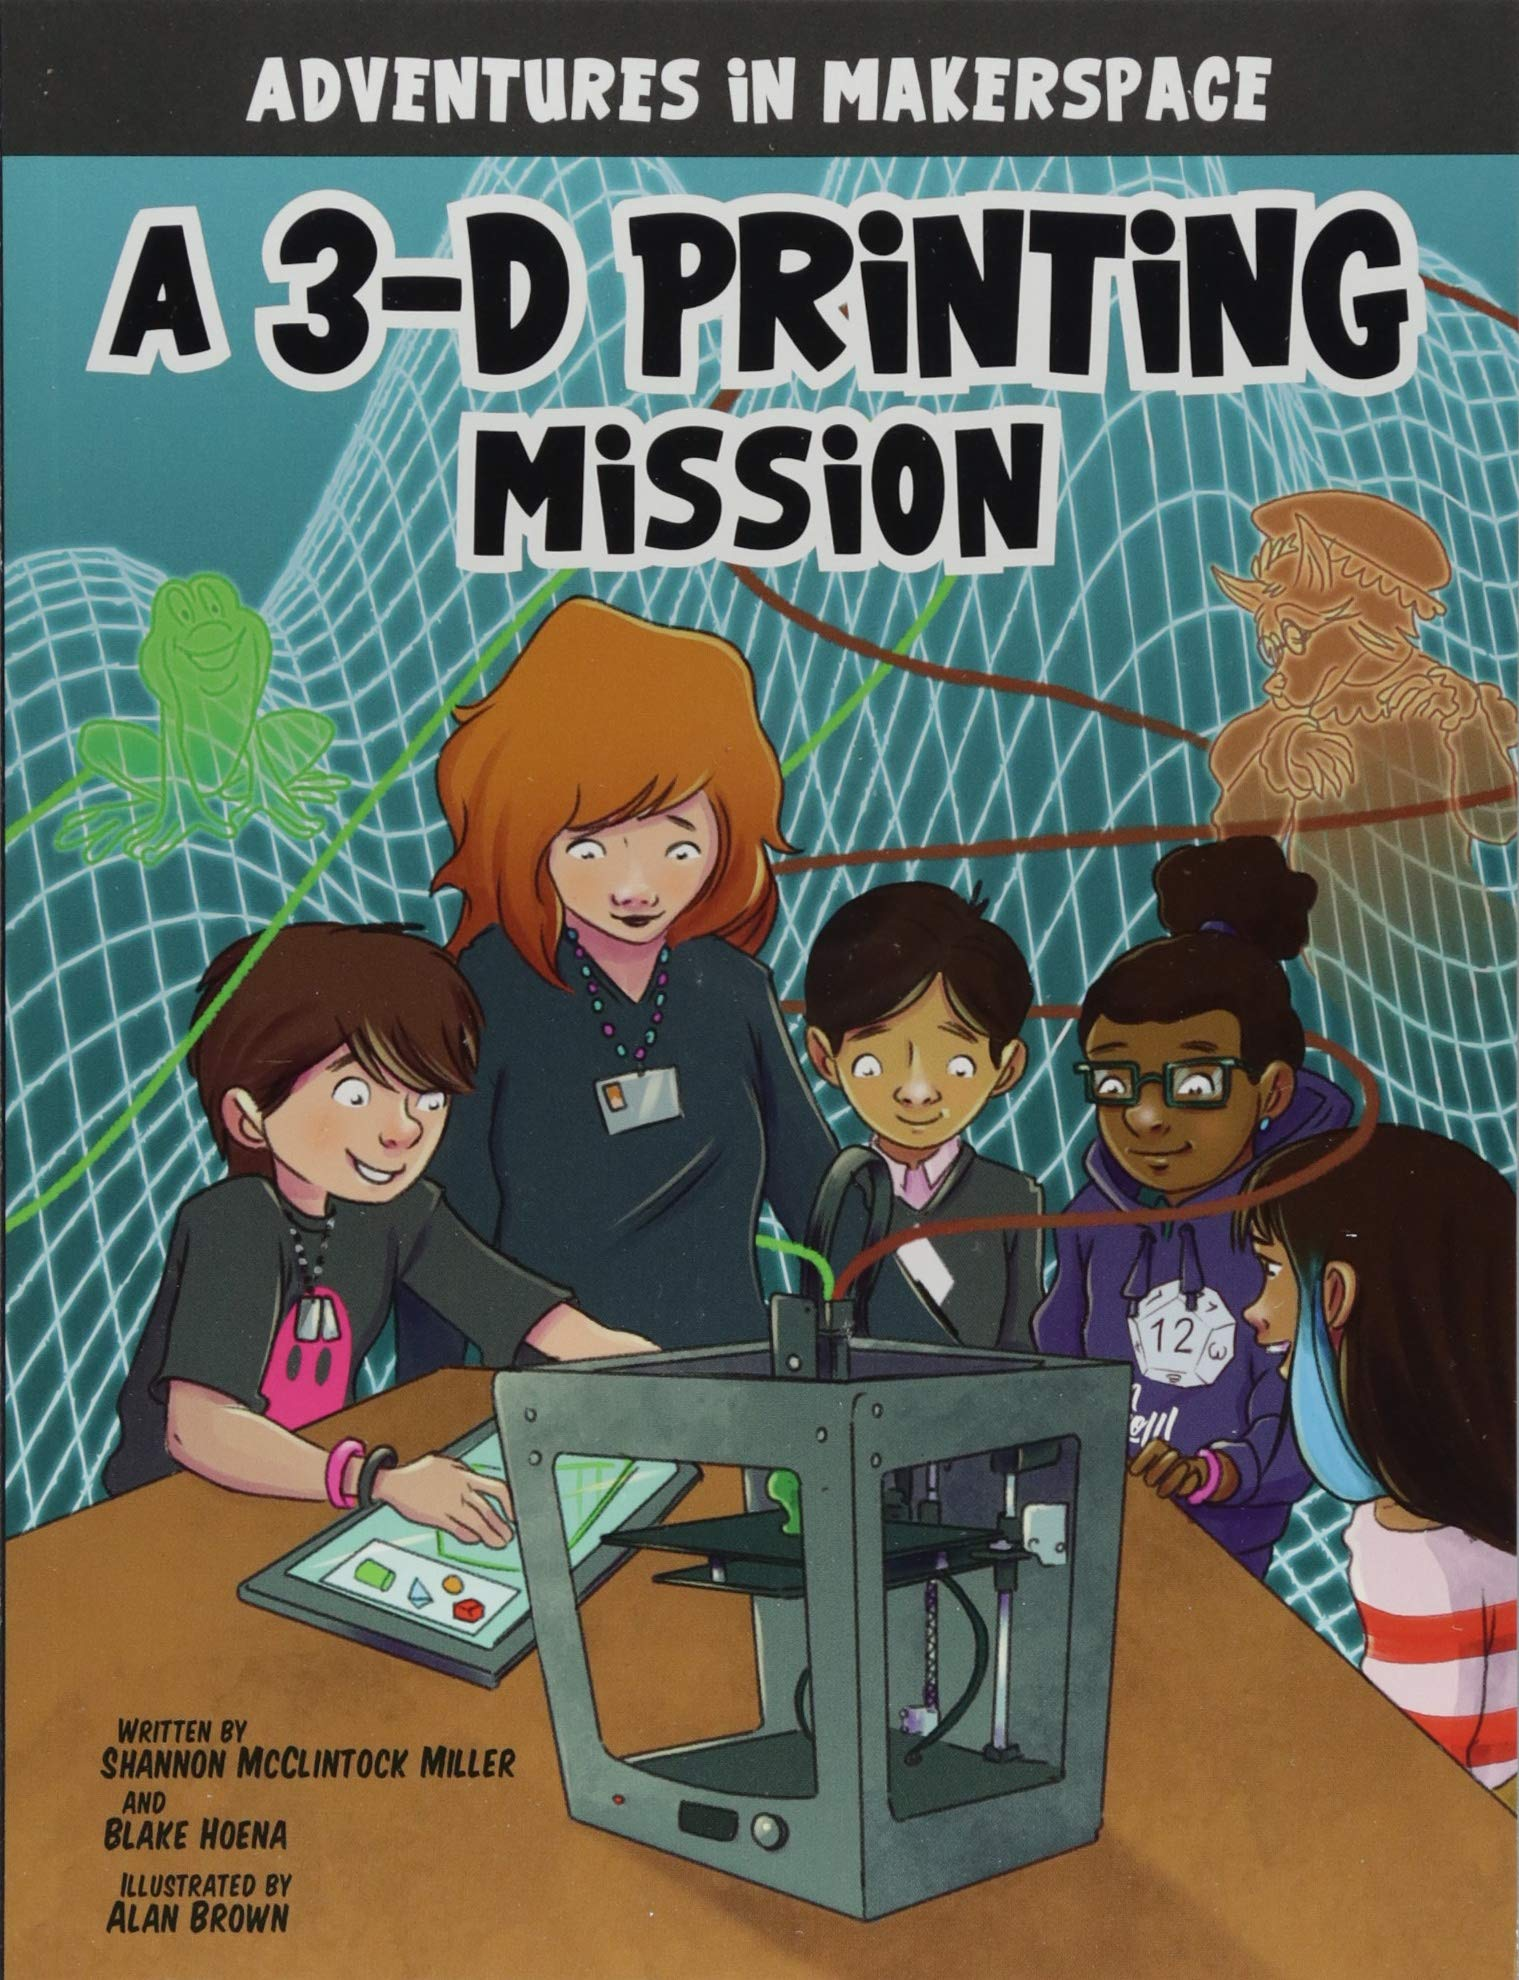 Download A 3-D Printing Mission (Adventures in Makerspace) pdf